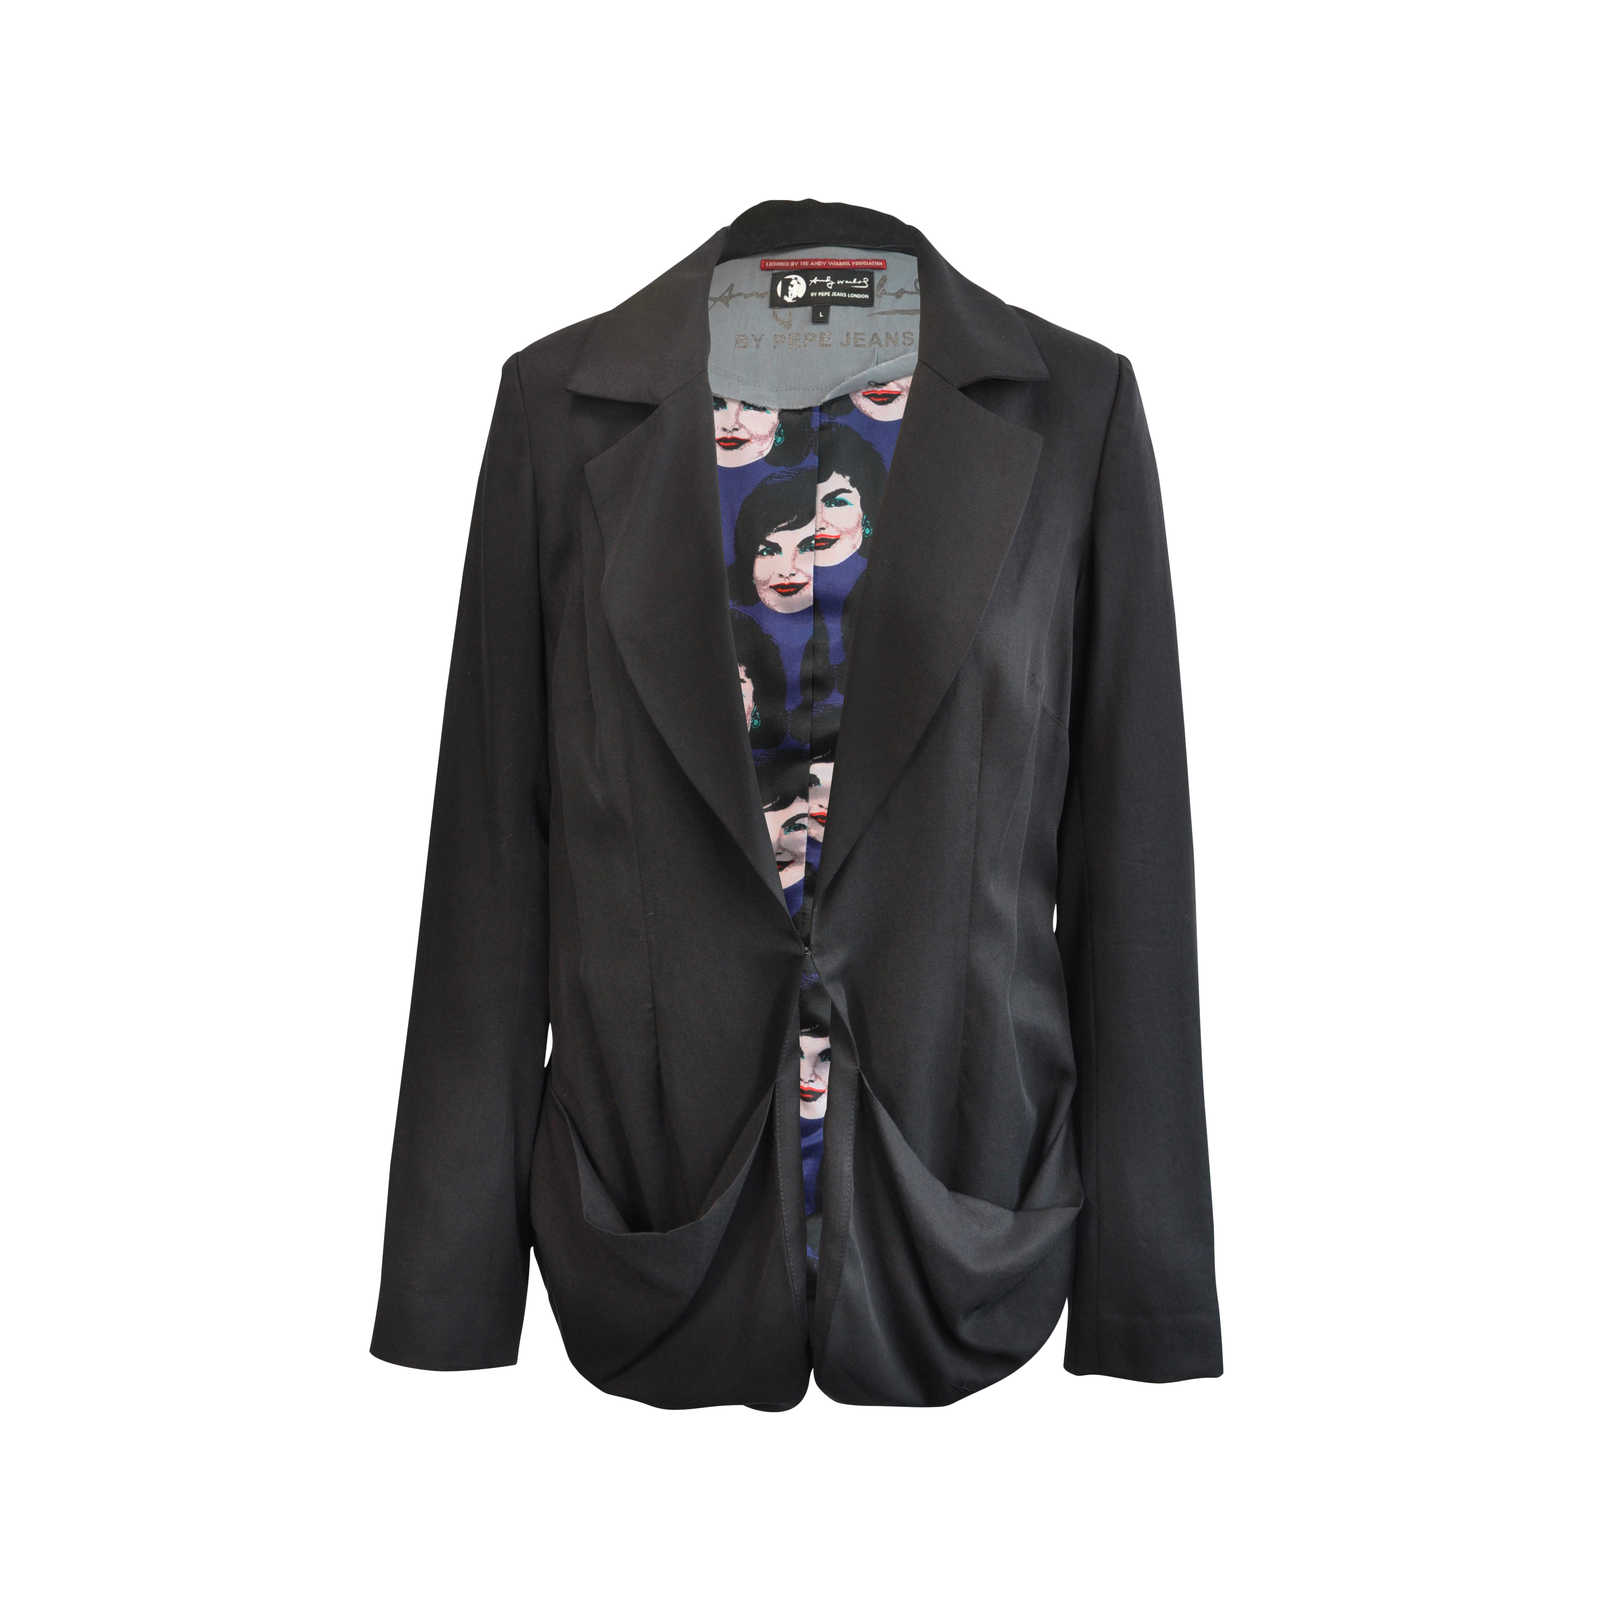 Authentic Second Hand Pepe Jeans London Andy Warhol Blazer